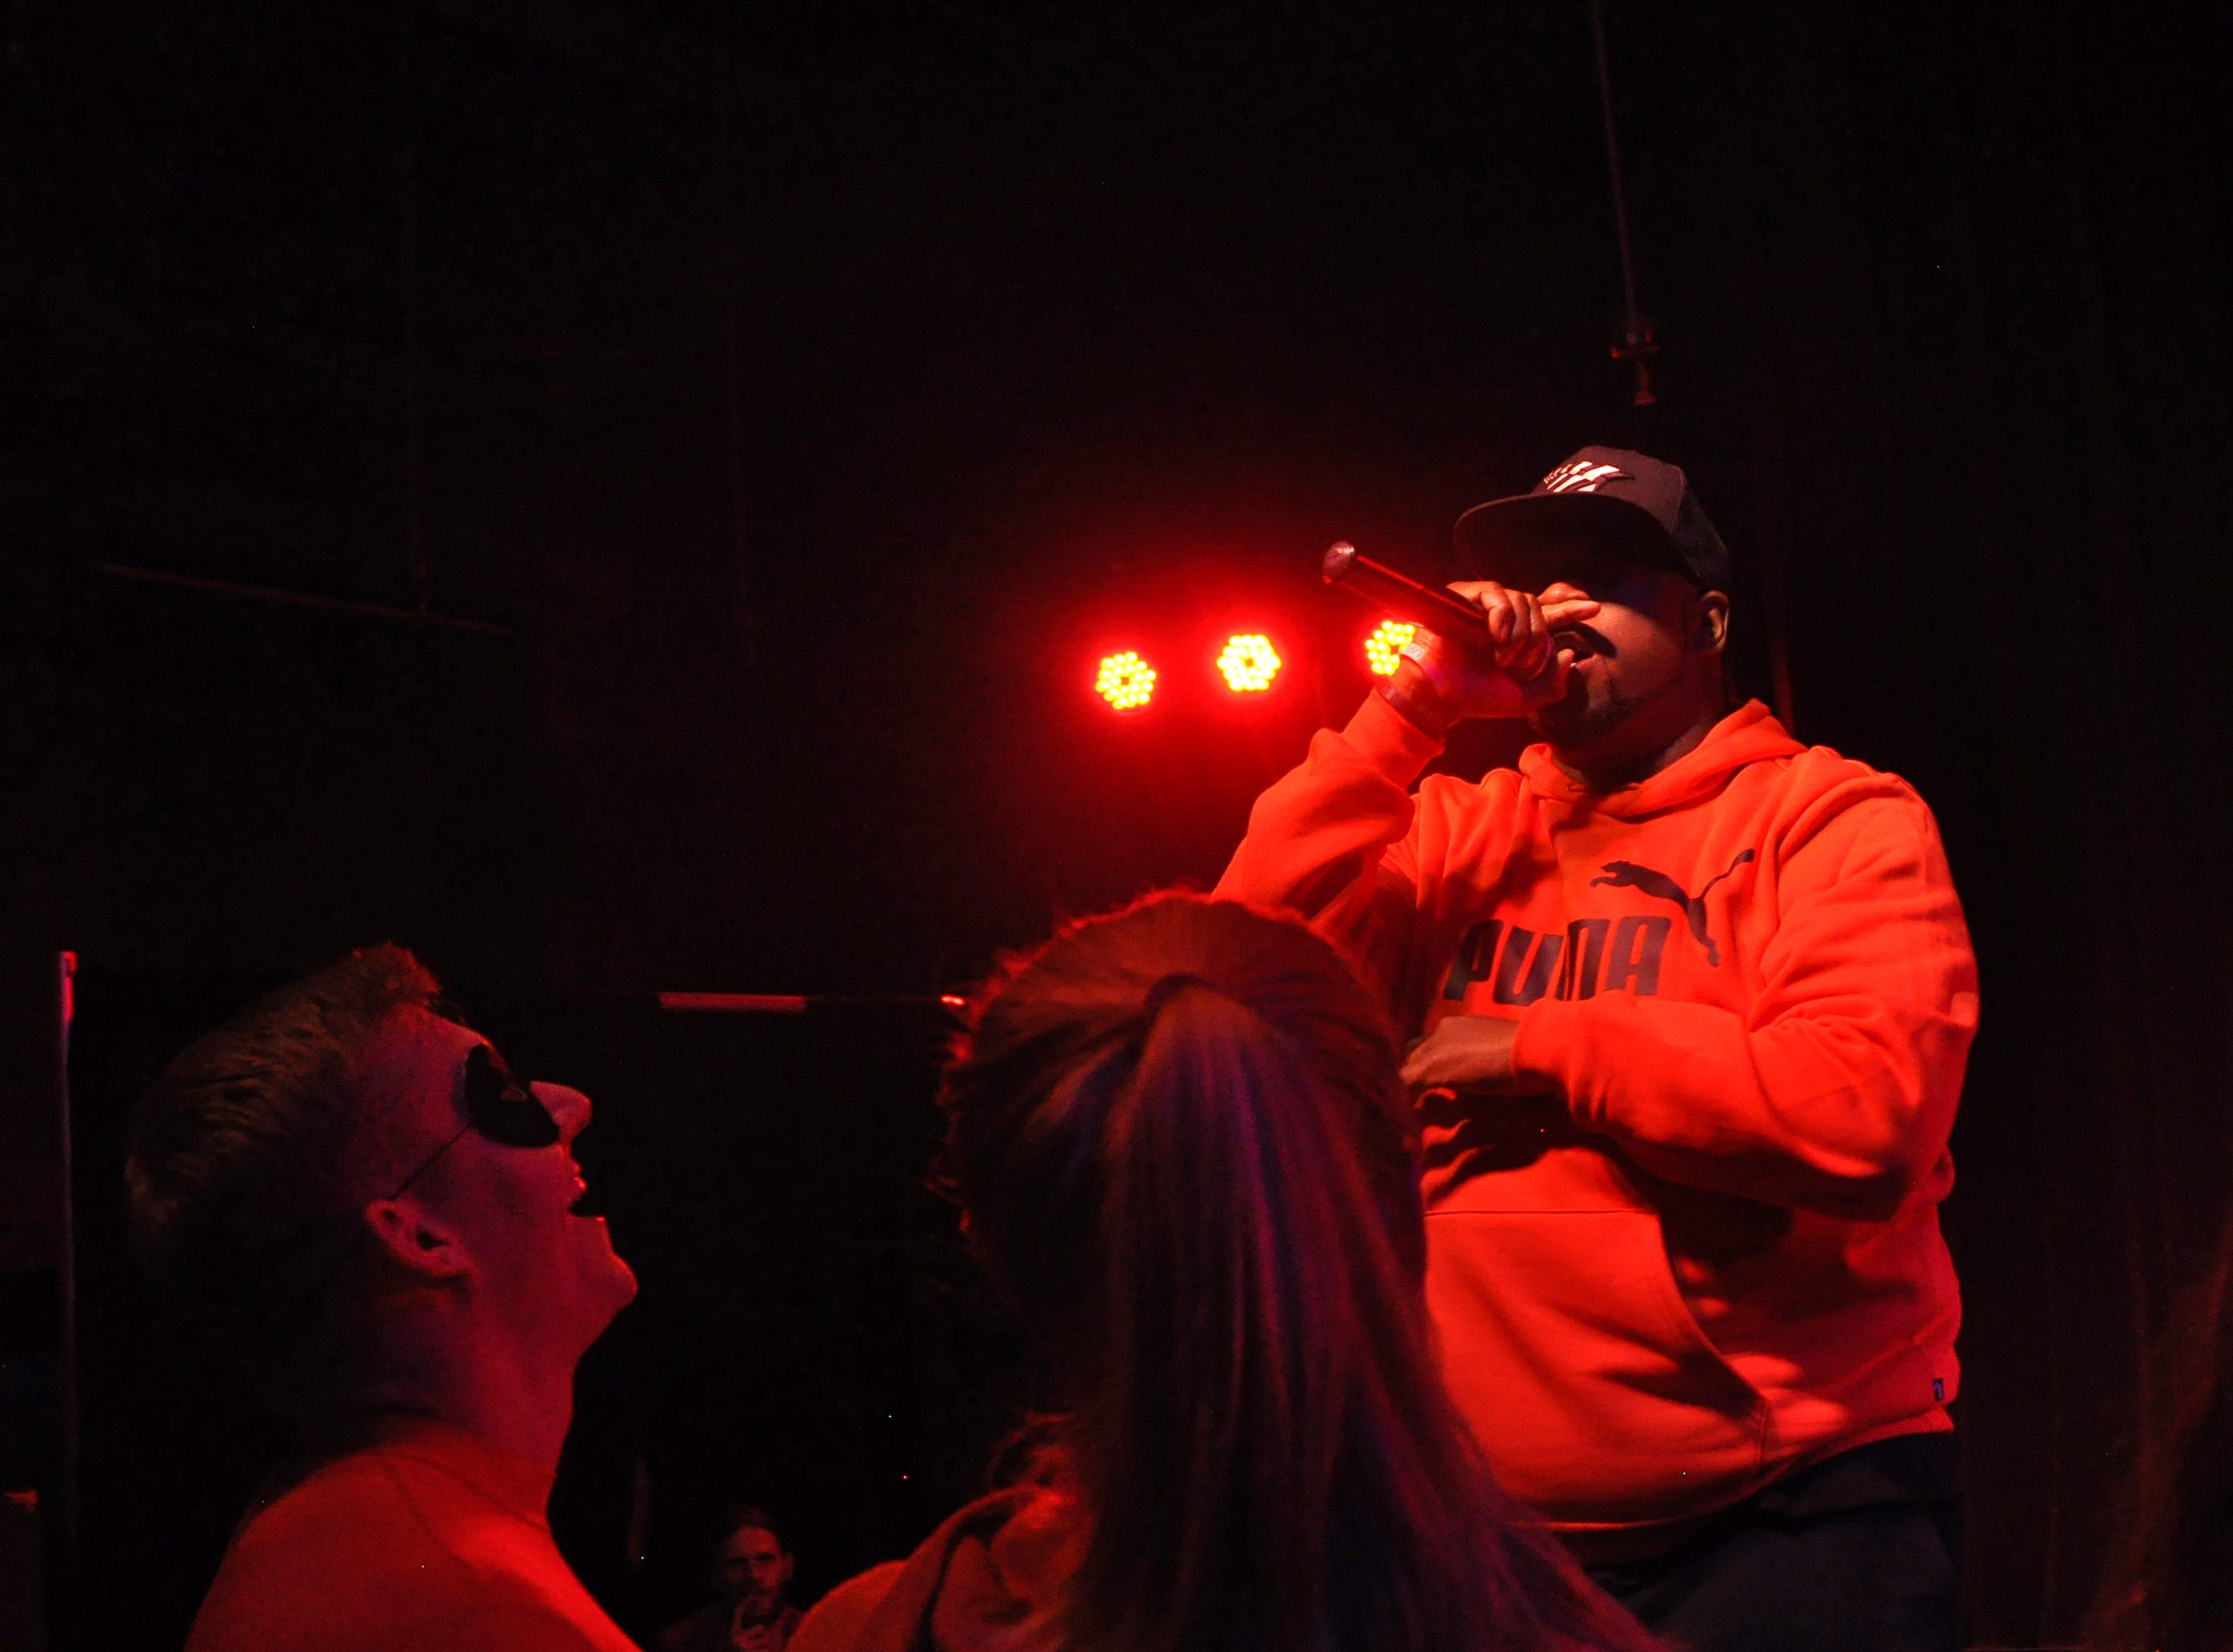 Vaney Hariri performs during the 10th Annual Halloween Rap Karaoke show at Icon Lounge Friday night. The event is was created by the Sioux Falls band Soulcrate.